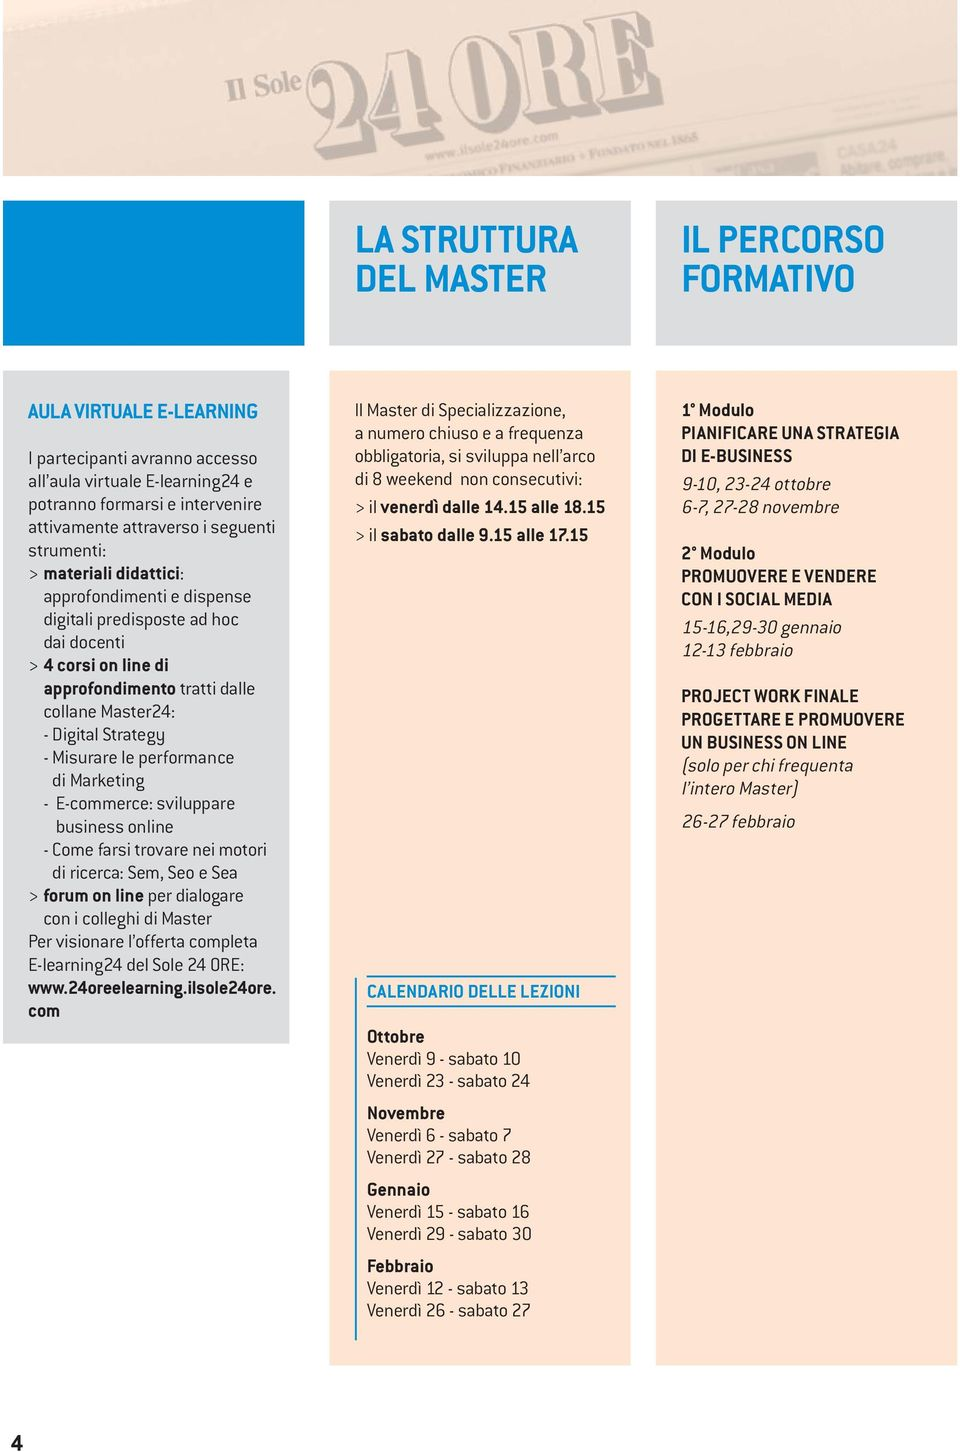 Misurare le performance di Marketing - E-commerce: sviluppare business online - Come farsi trovare nei motori di ricerca: Sem, Seo e Sea > forum on line per dialogare con i colleghi di Master Per